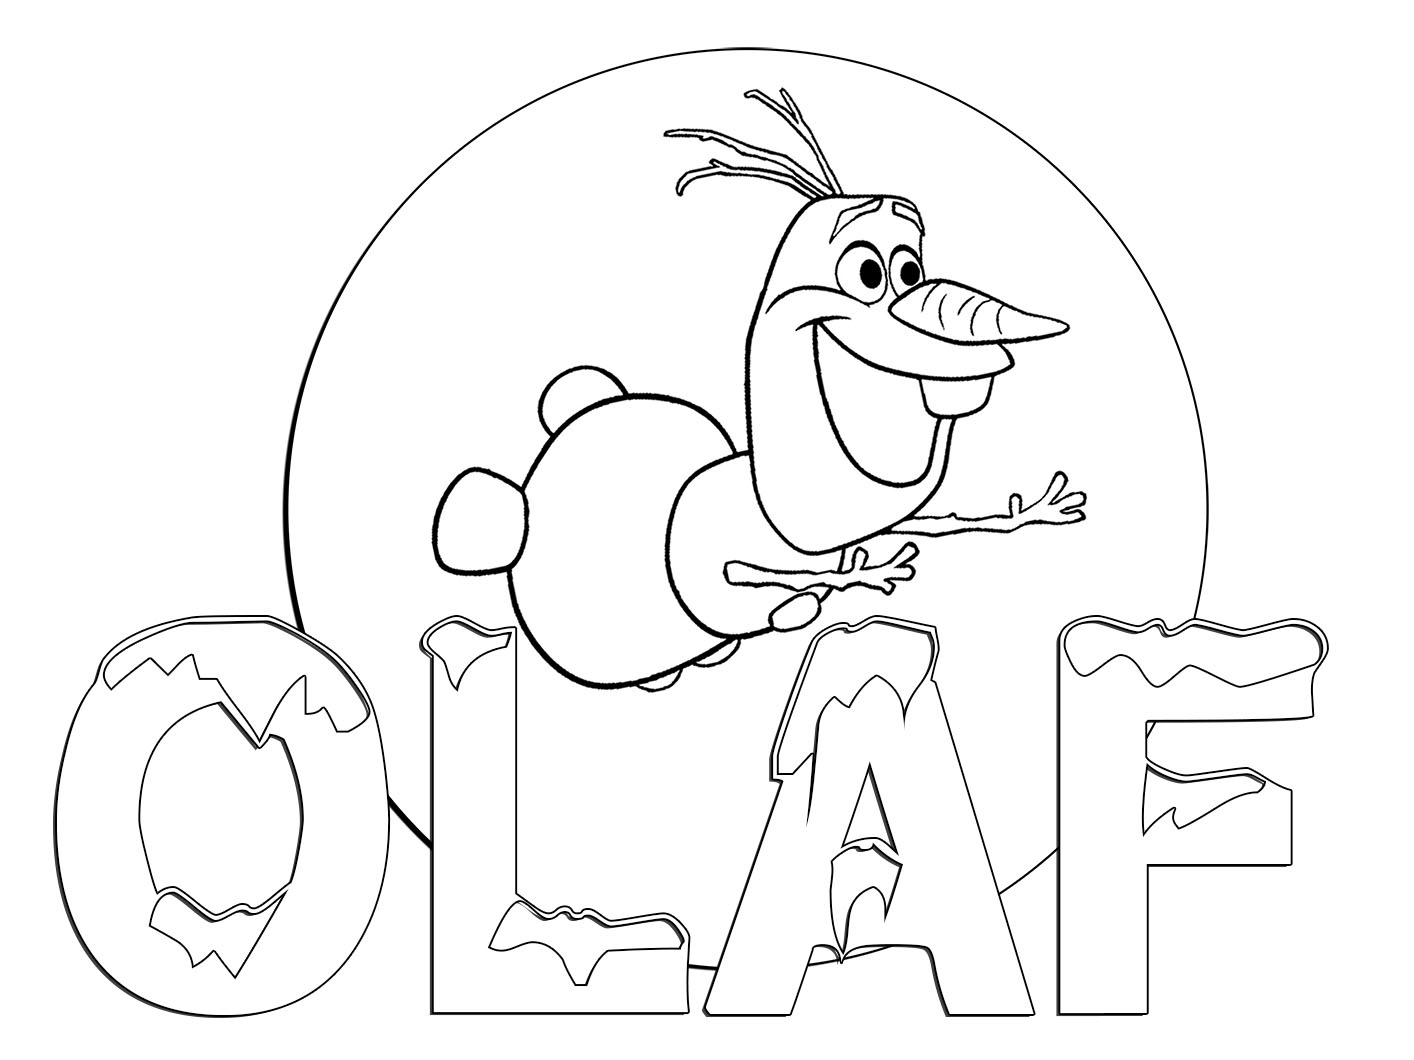 pictures of frozen to color olaf free coloring page frozen coloring book to pictures frozen of color